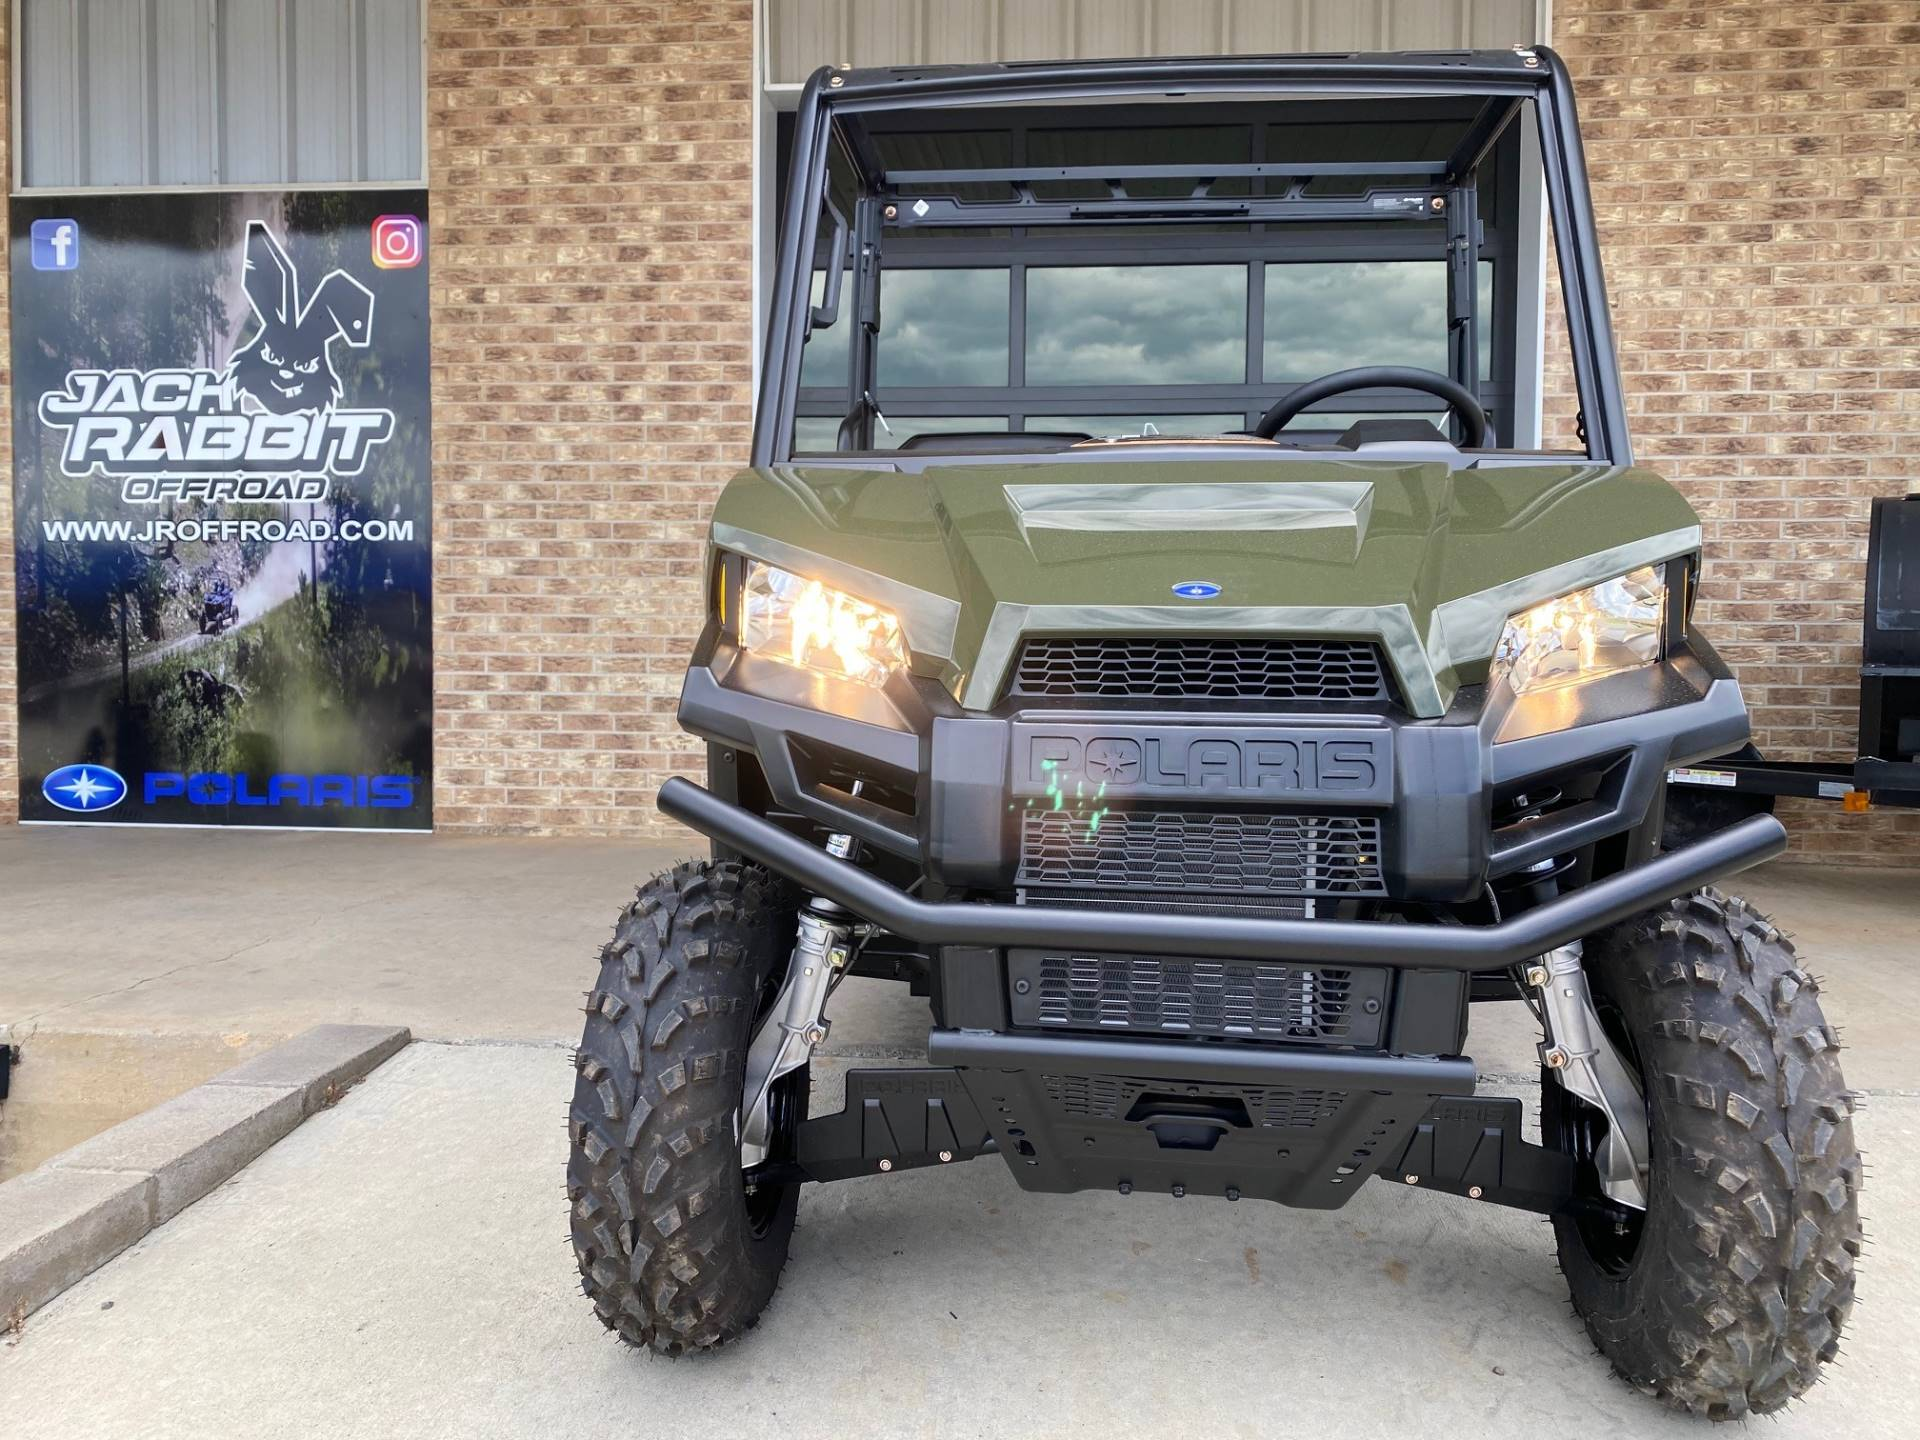 2019 Polaris Ranger 500 4x2 in Marshall, Texas - Photo 8